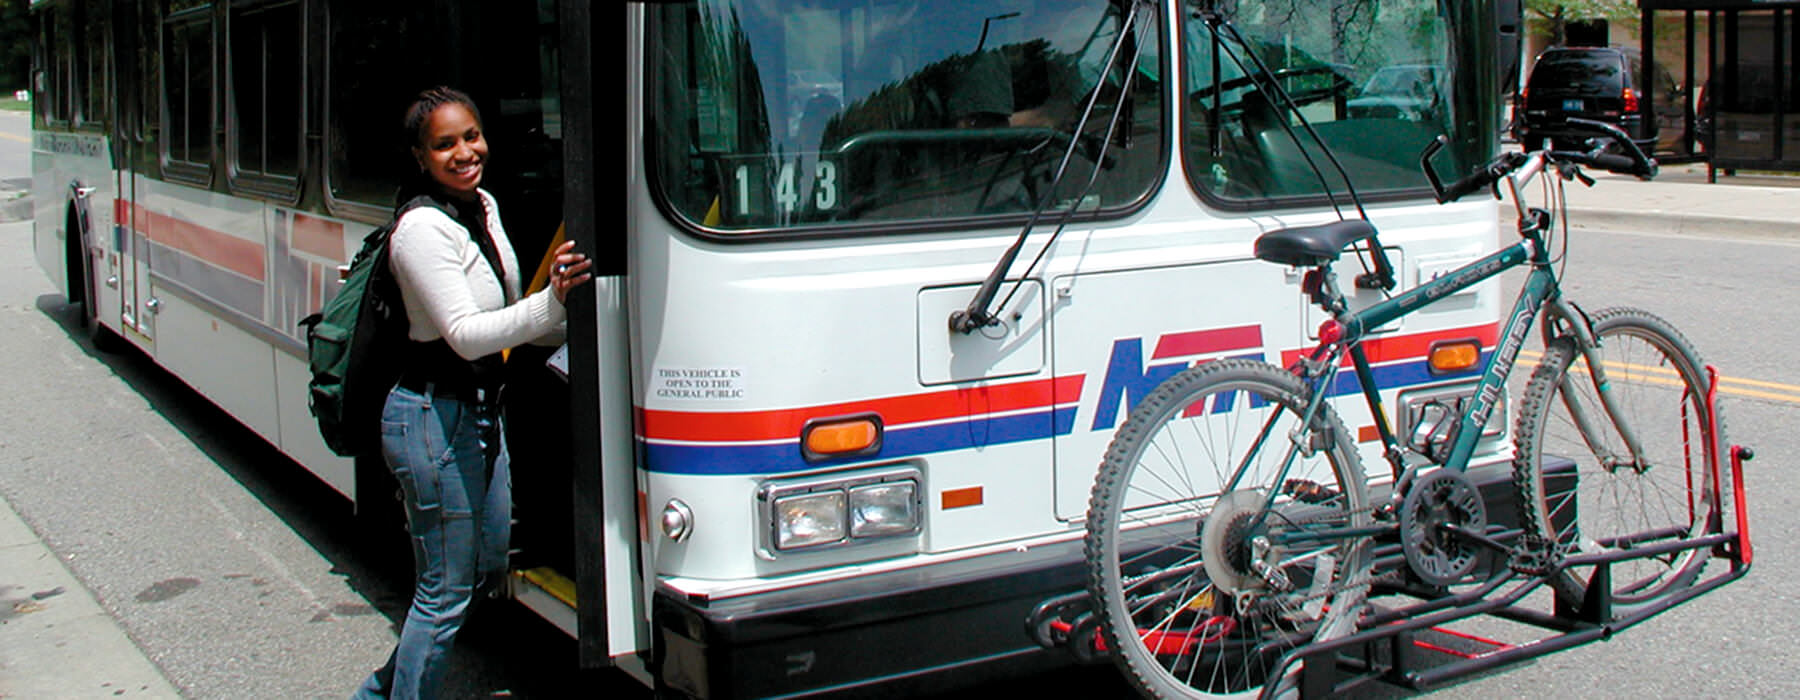 Woman boarding MTA Primary Route bus with bike on the rack in the front of bus.